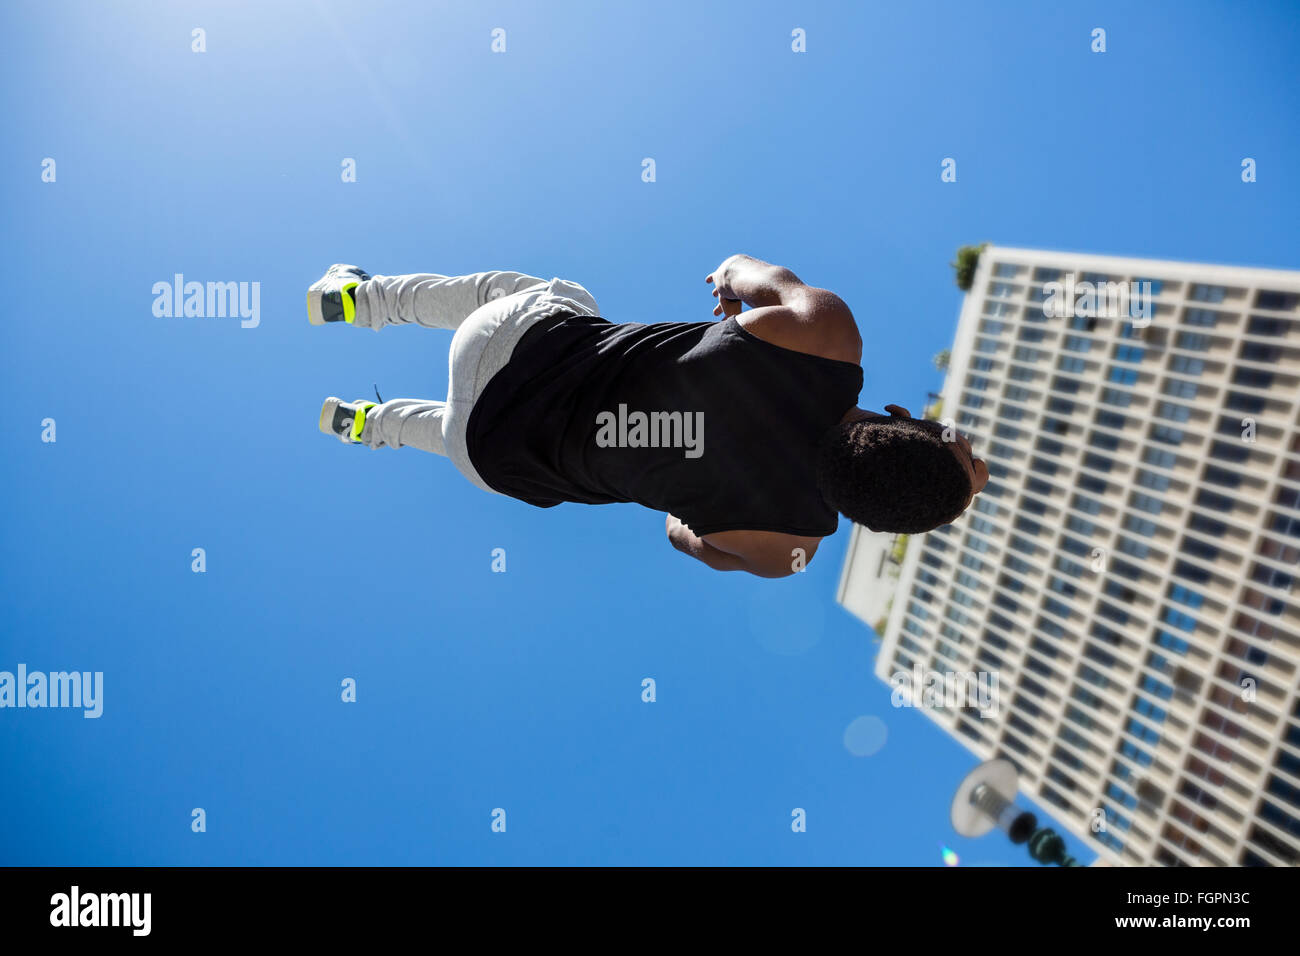 Athletic man doing back flip in the city - Stock Image